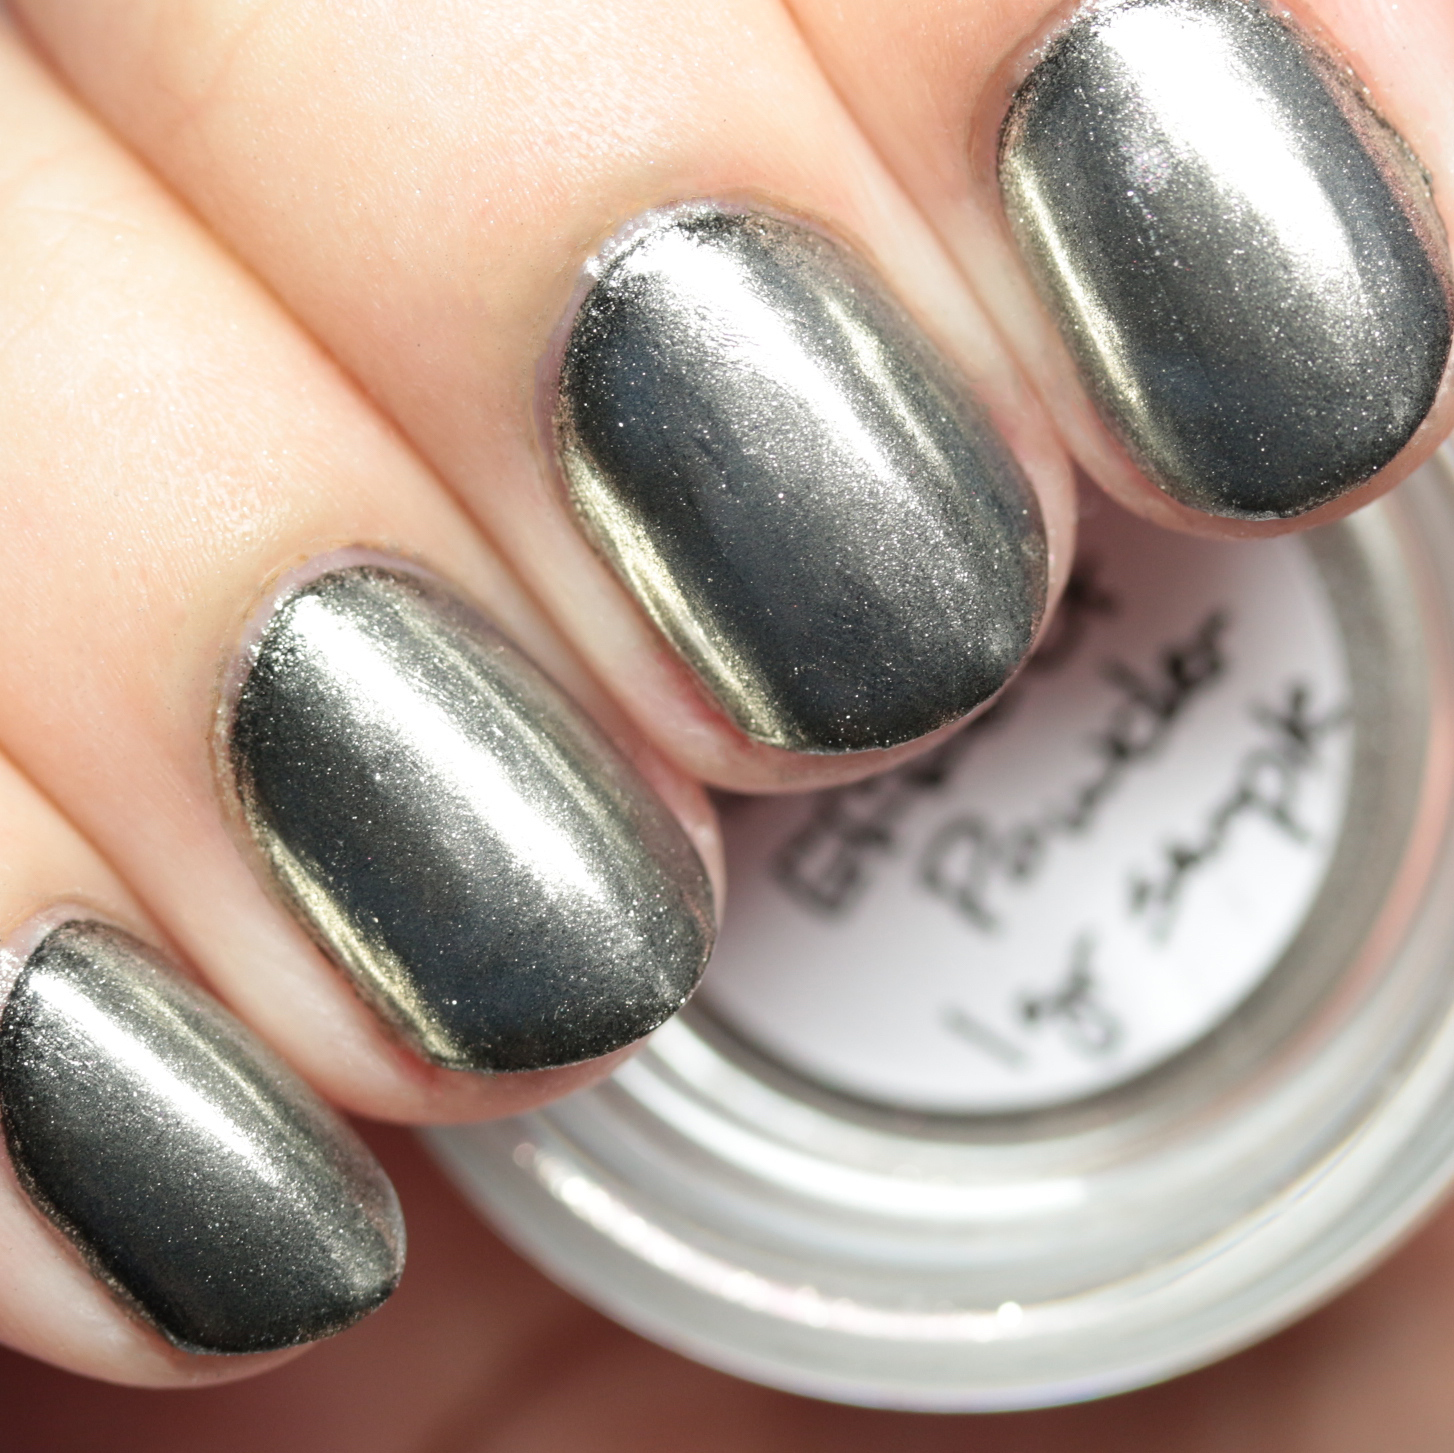 Nail Polish That Looks Like Chrome: The Polished Hippy: Girly Bits Cosmetics Mirror Chrome